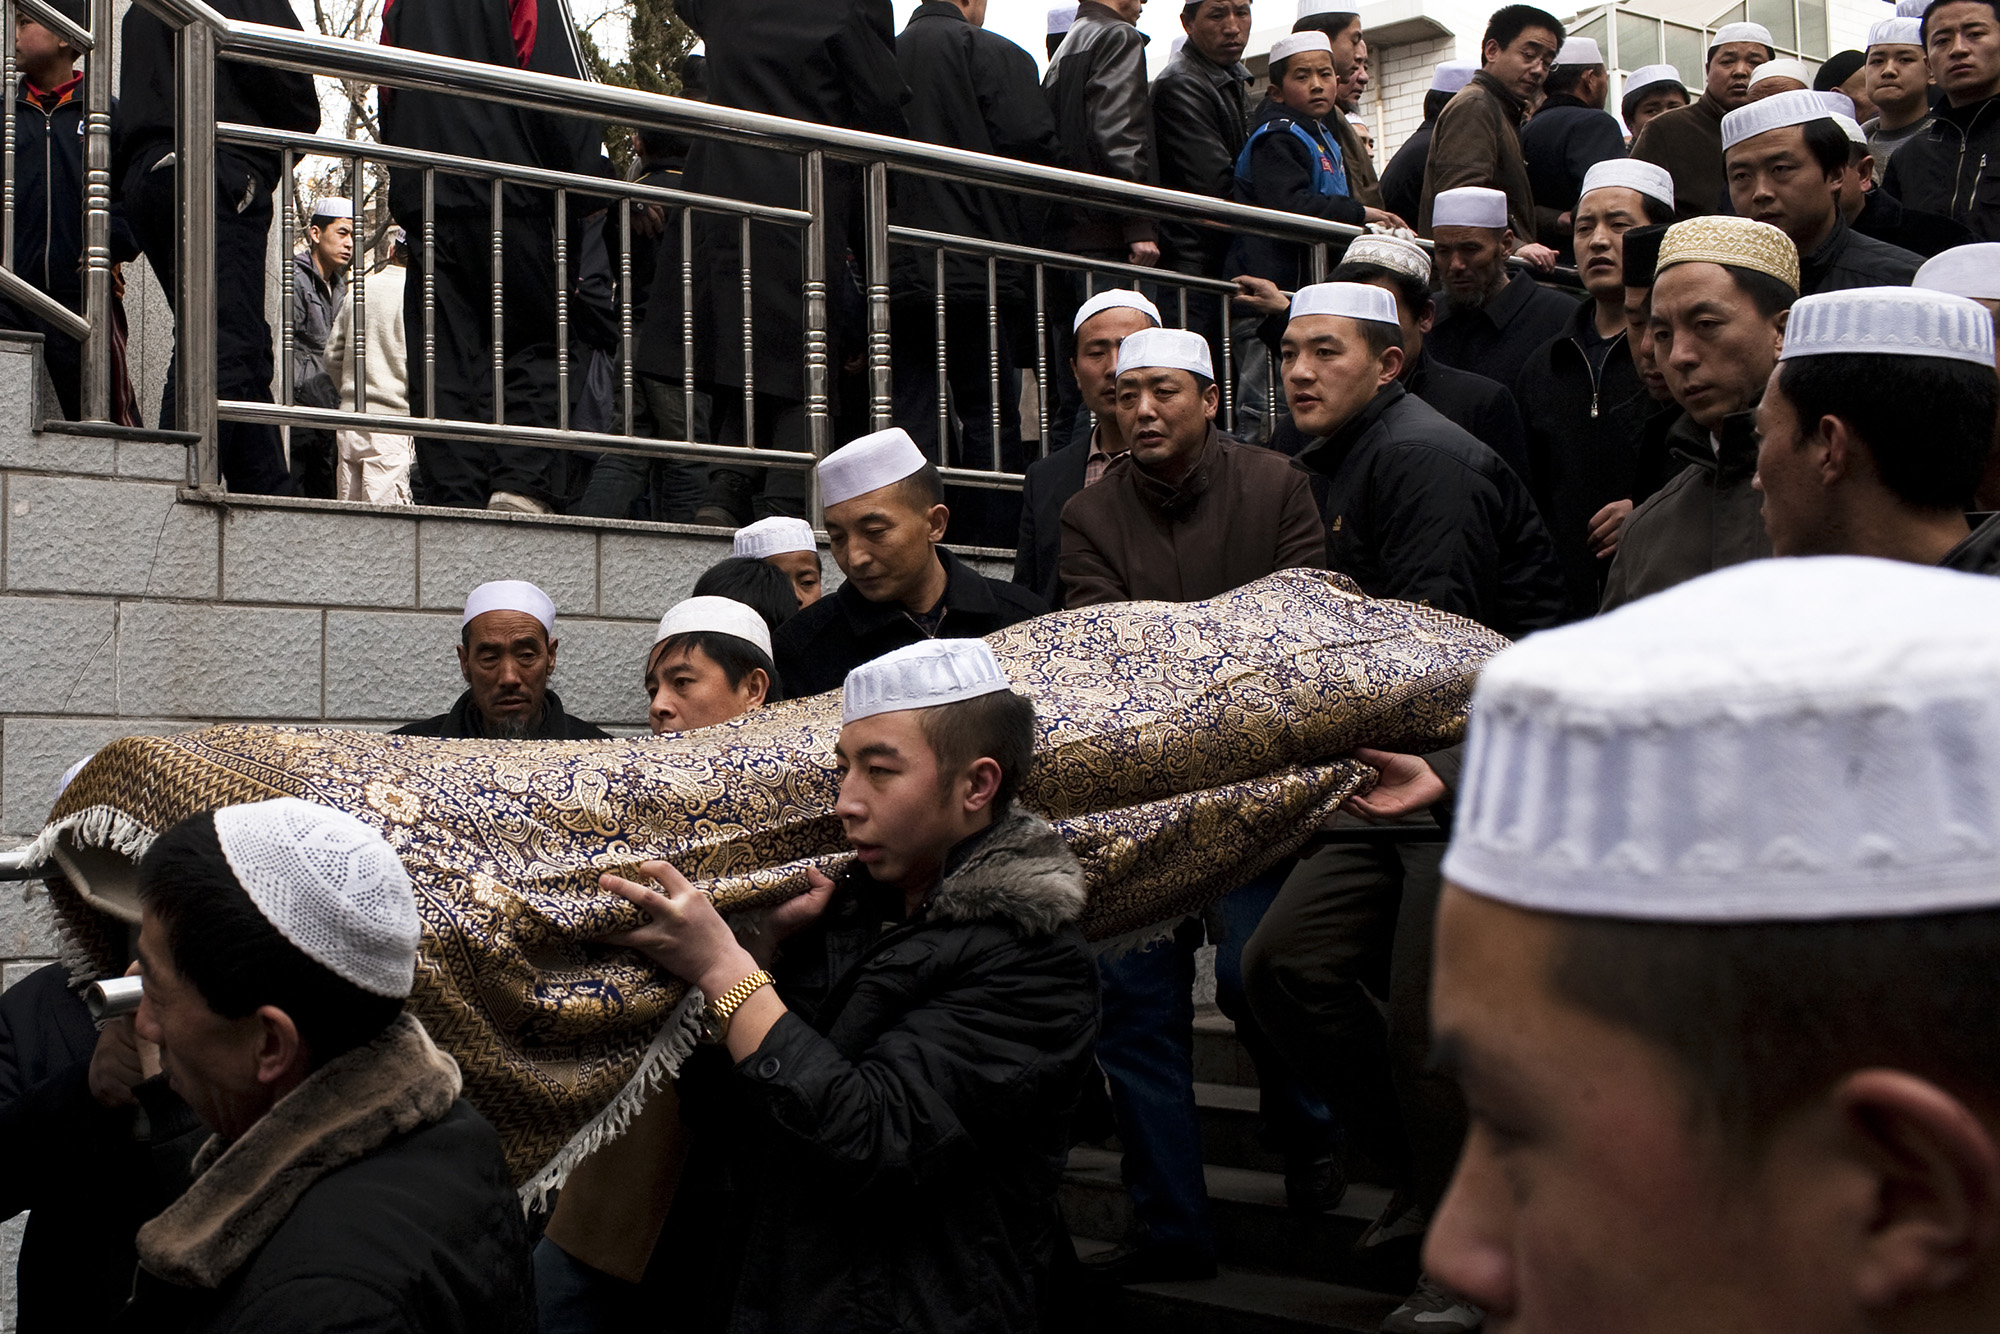 A funeral takes place at a neighbouring mosque.